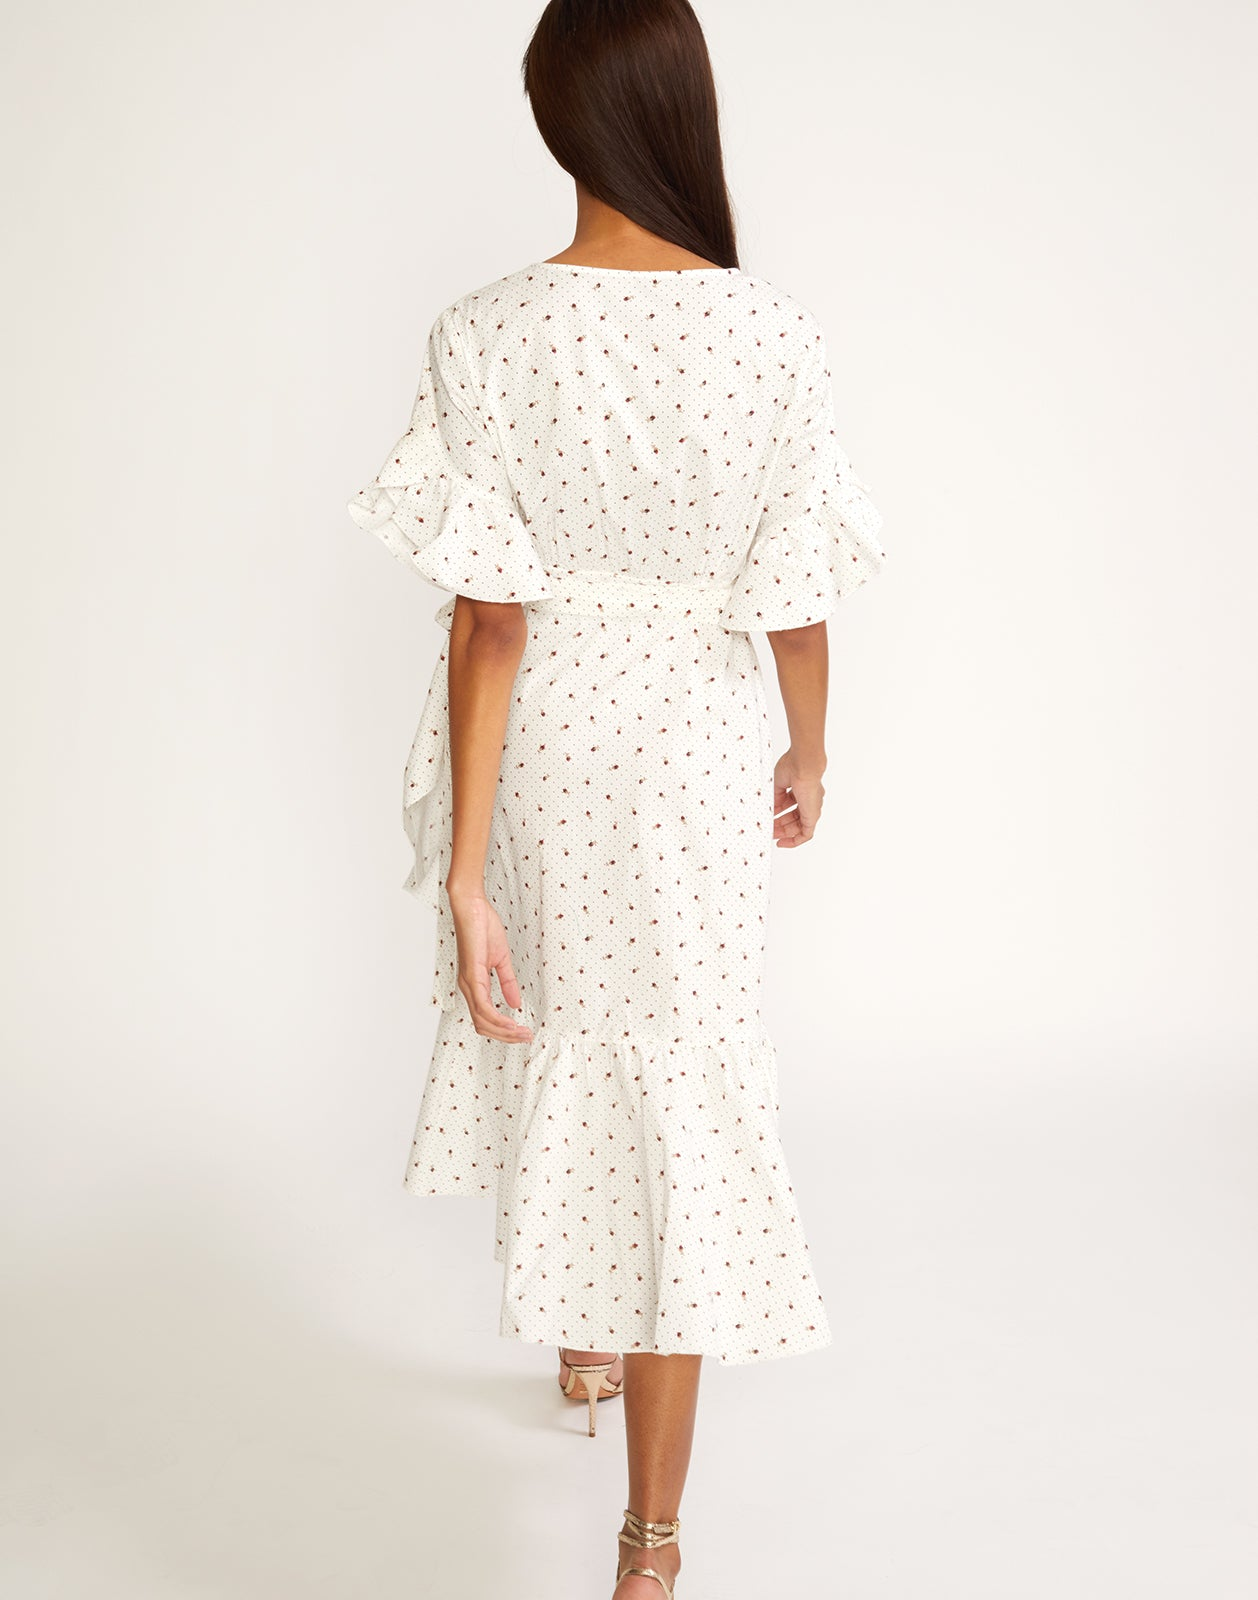 Back view of the polished cotton ruffle wrap dress in mini rosebud print.